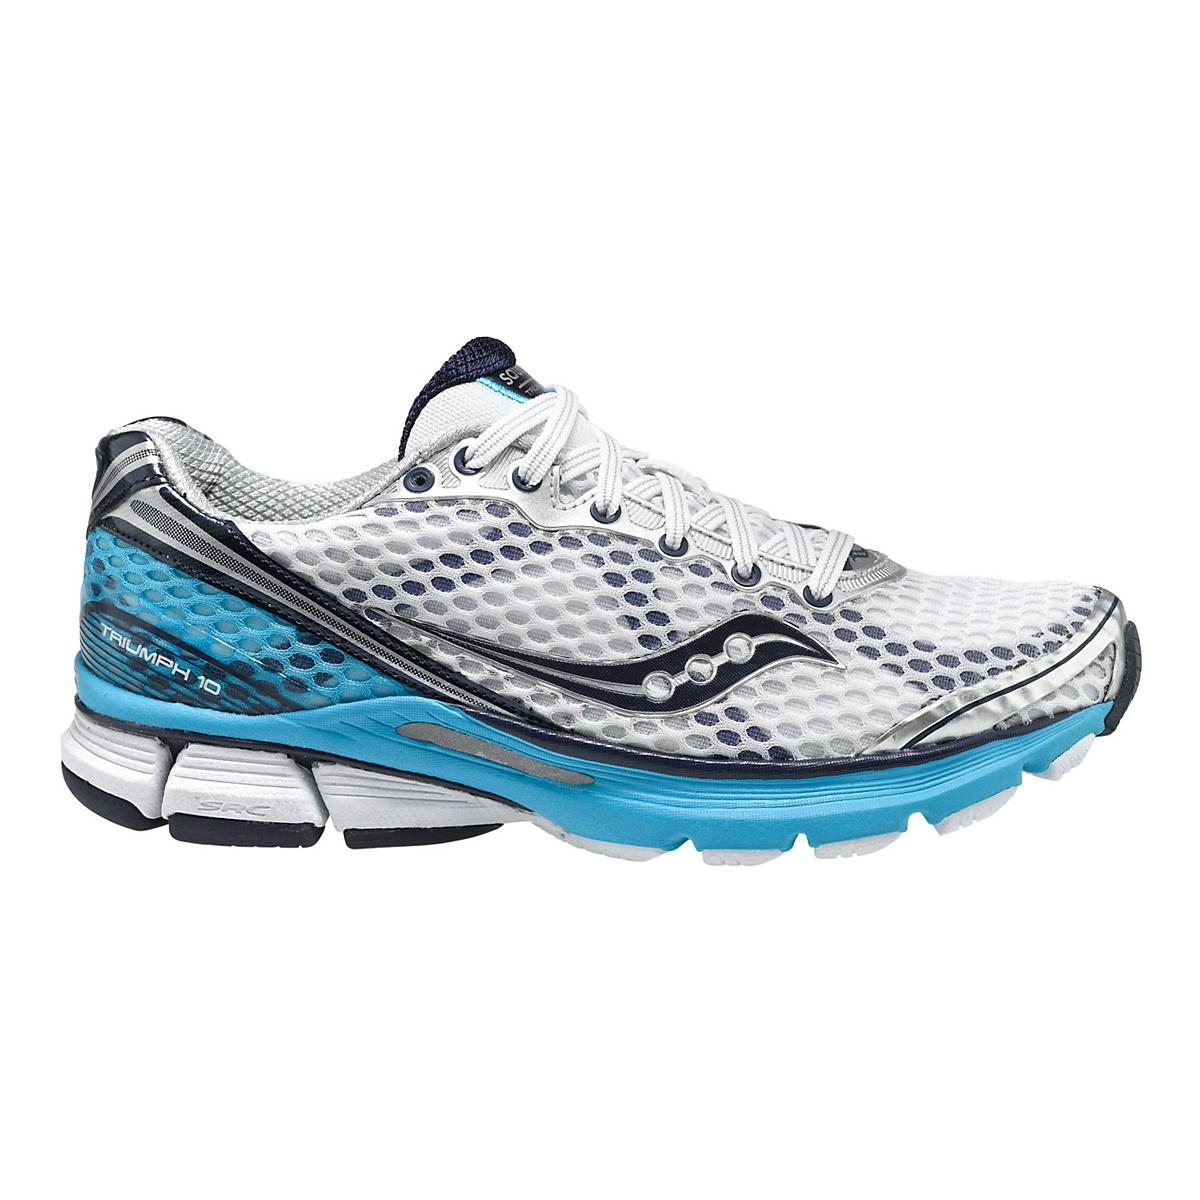 womens saucony powergrid triumph 10 running shoe at road runner sports